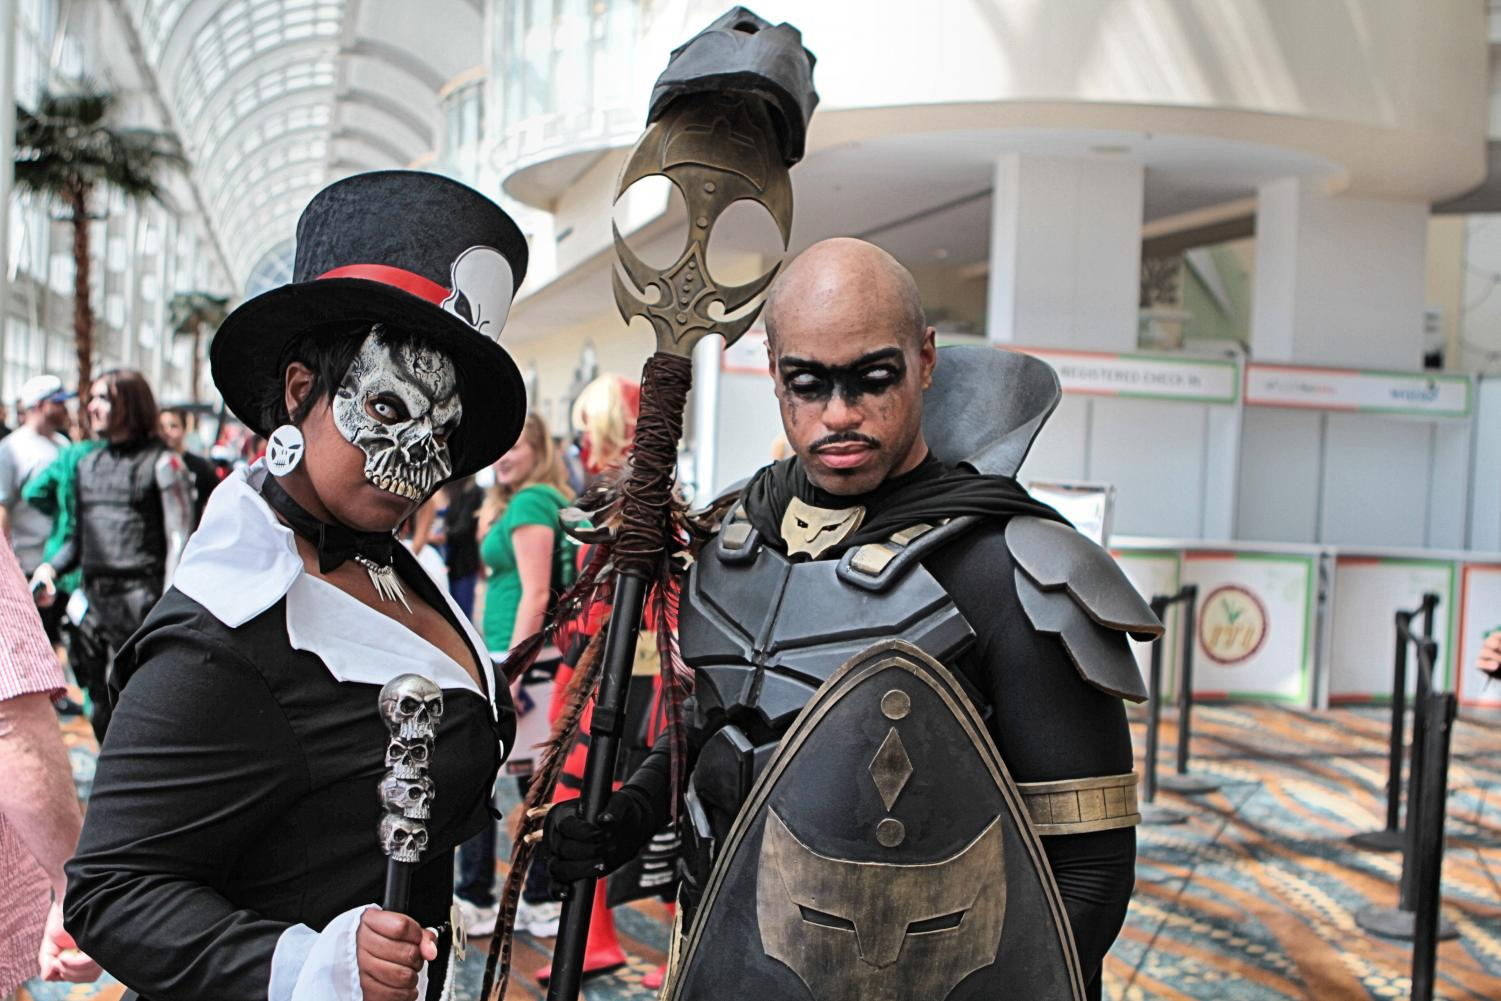 Doctor Facilier and Black Panther from Cosplay at Long Beach Comic Expo 2014. Black fans exist and Hollywood should be courting that audience as much as they cater to other audiences. Photo courtesy of Flickr